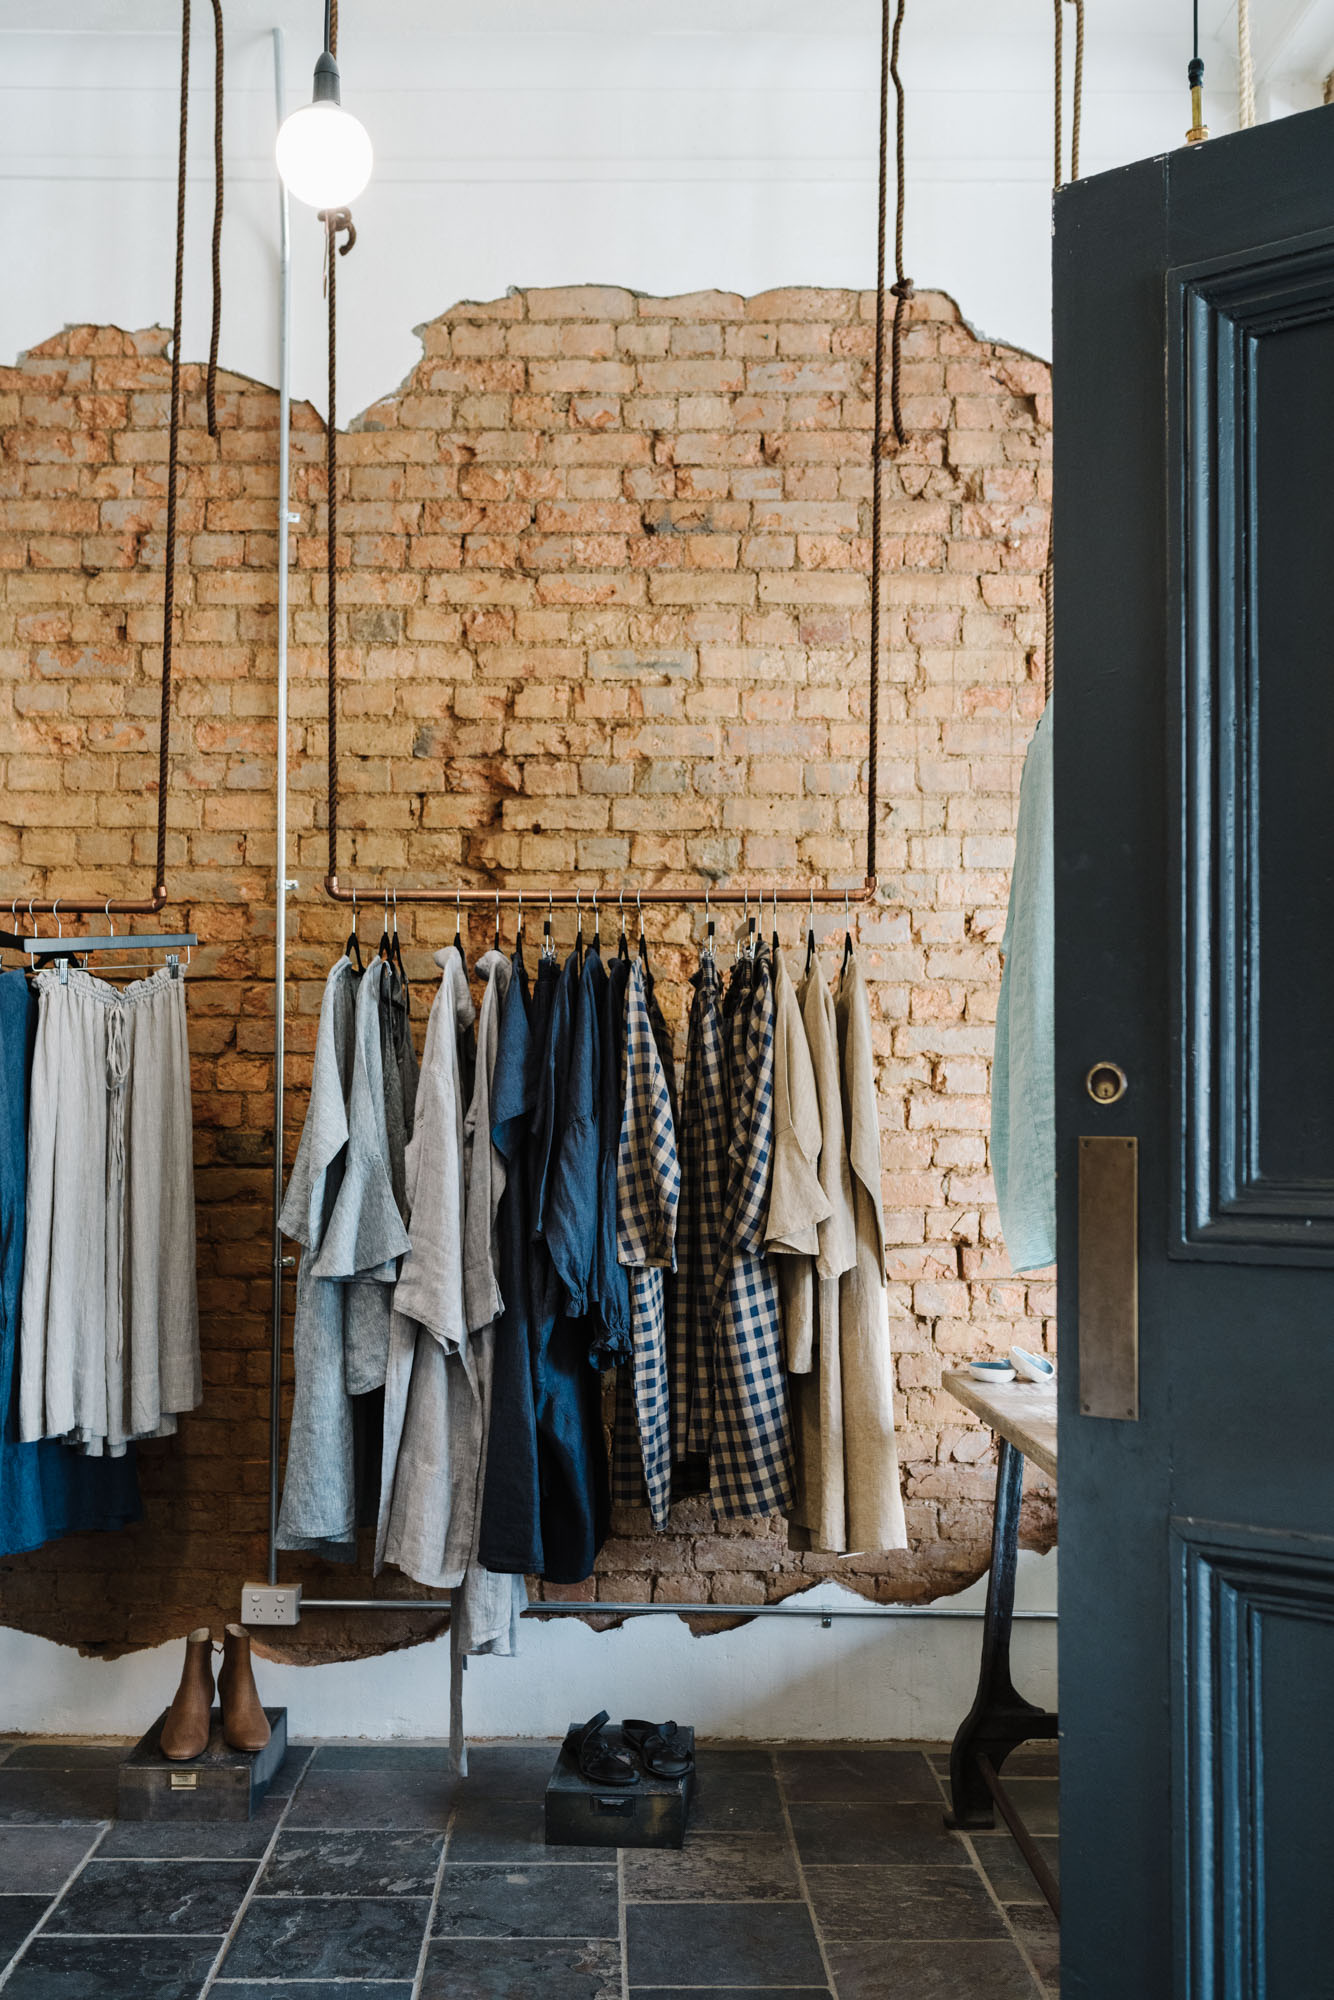 Eva's Sunday, Australian designed linen label. Photographed by Marnie Hawson for Country Style.